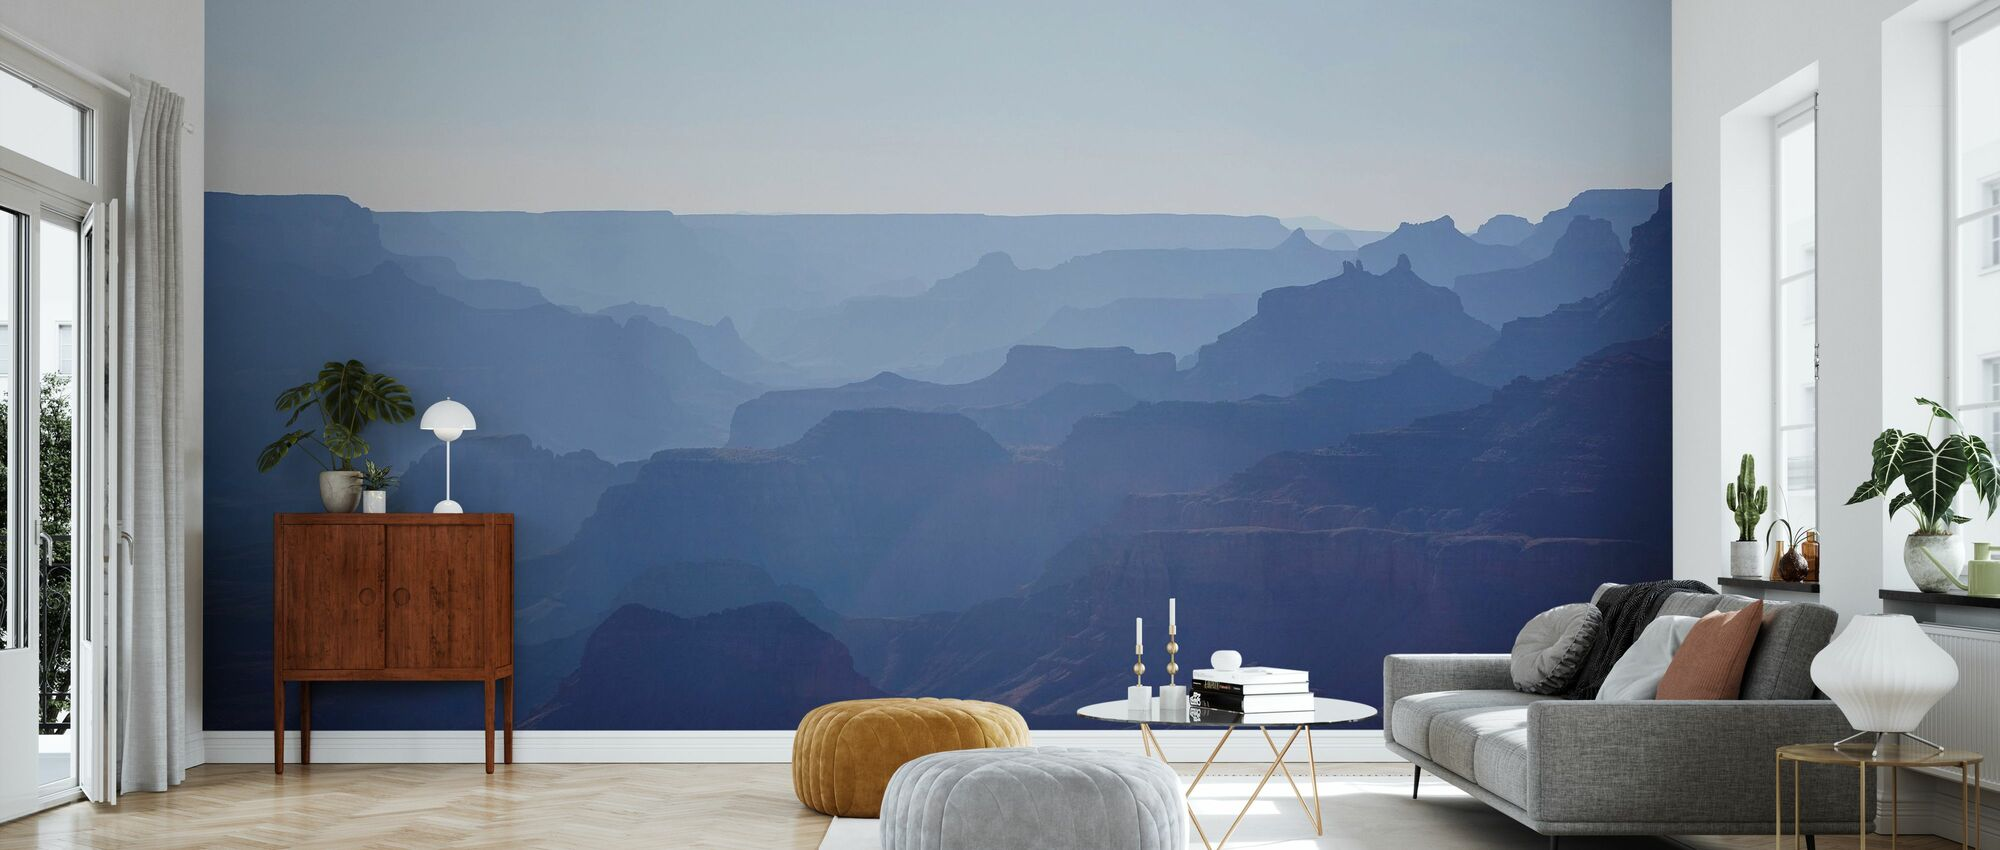 View Over Blue Grand Canyon - Wallpaper - Living Room